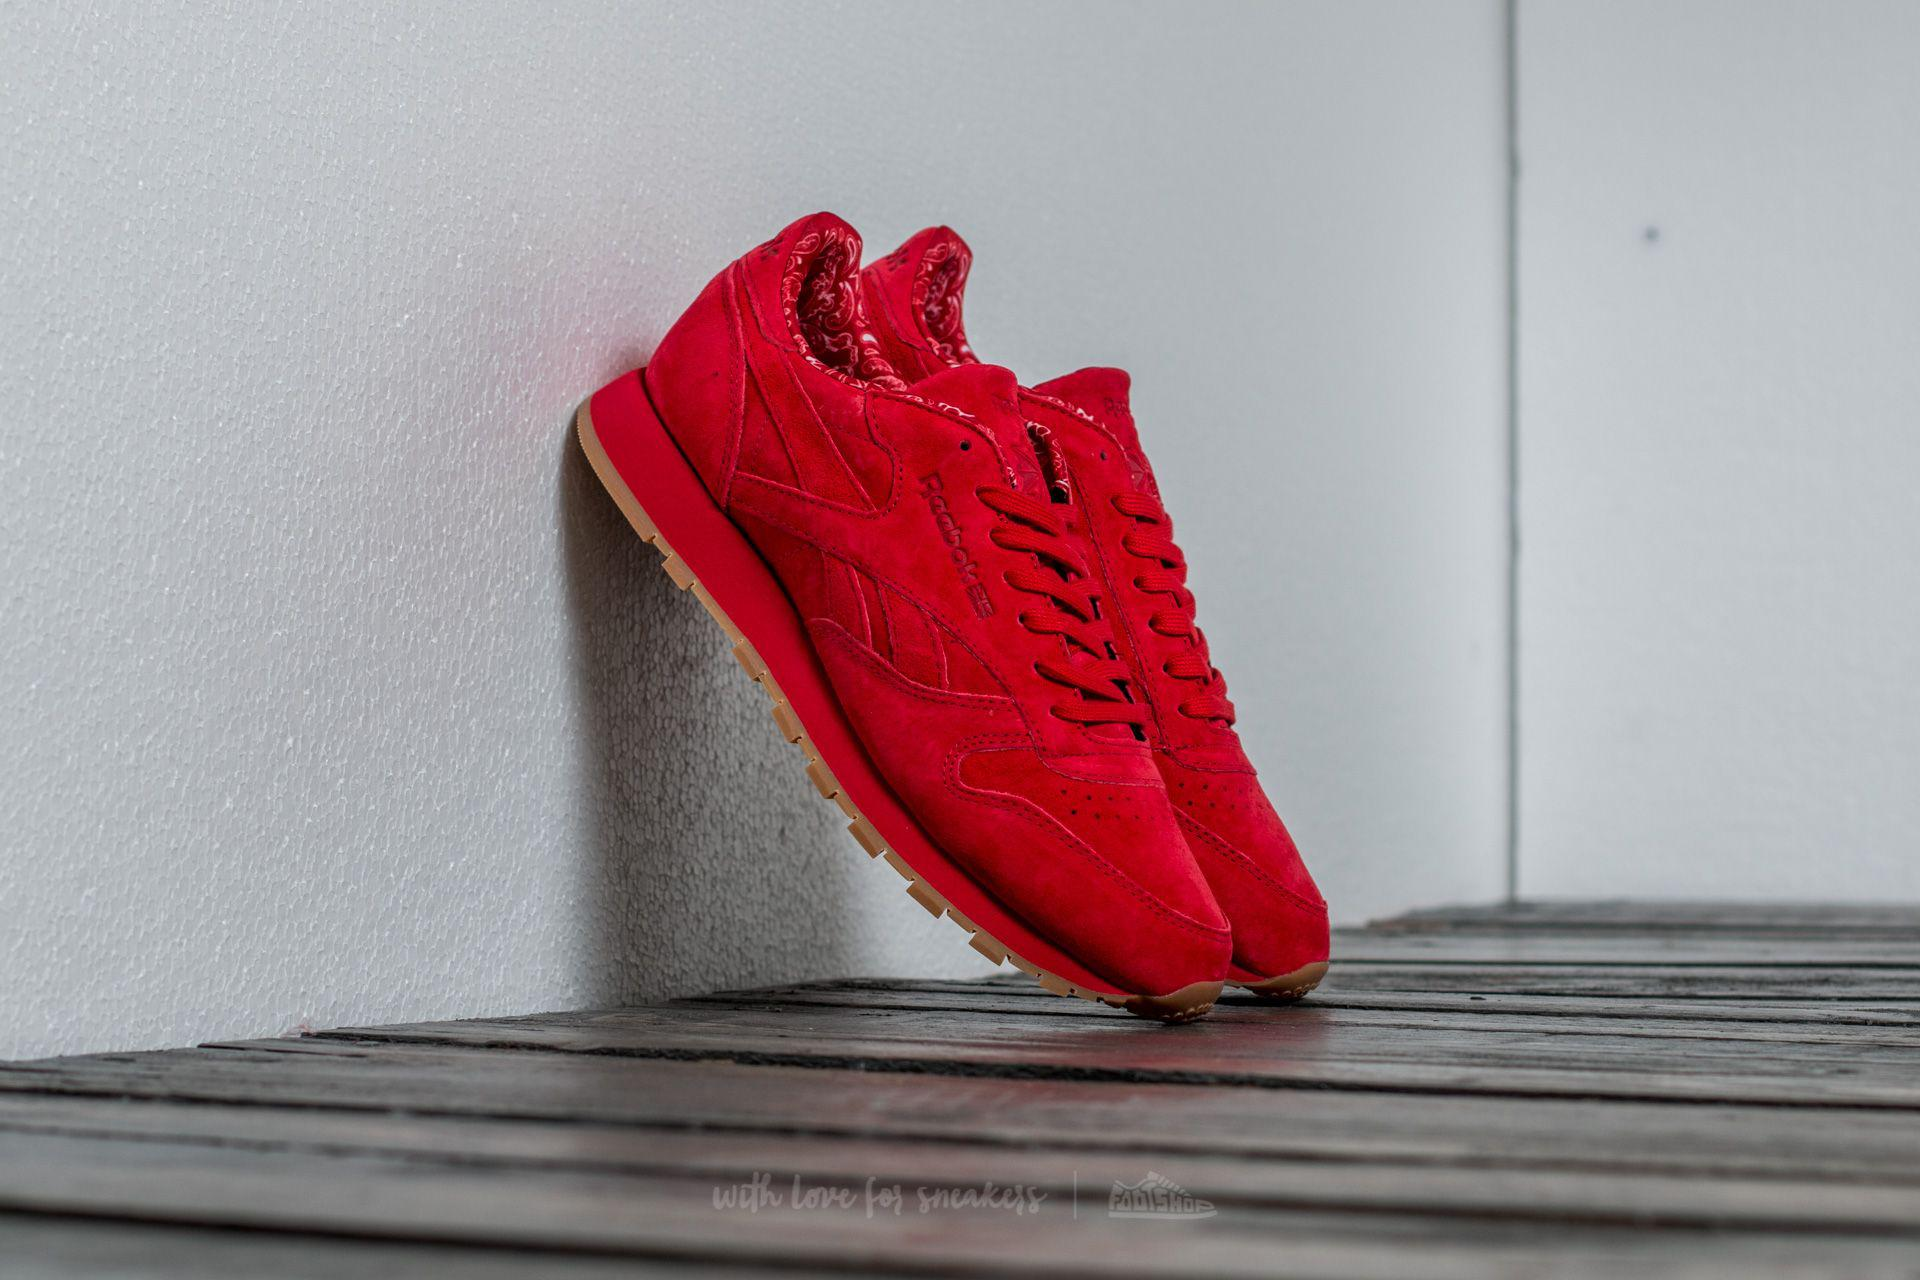 Lyst - Reebok Classic Leather Tdc Scarlet  White-gum in Red for Men b83856bca